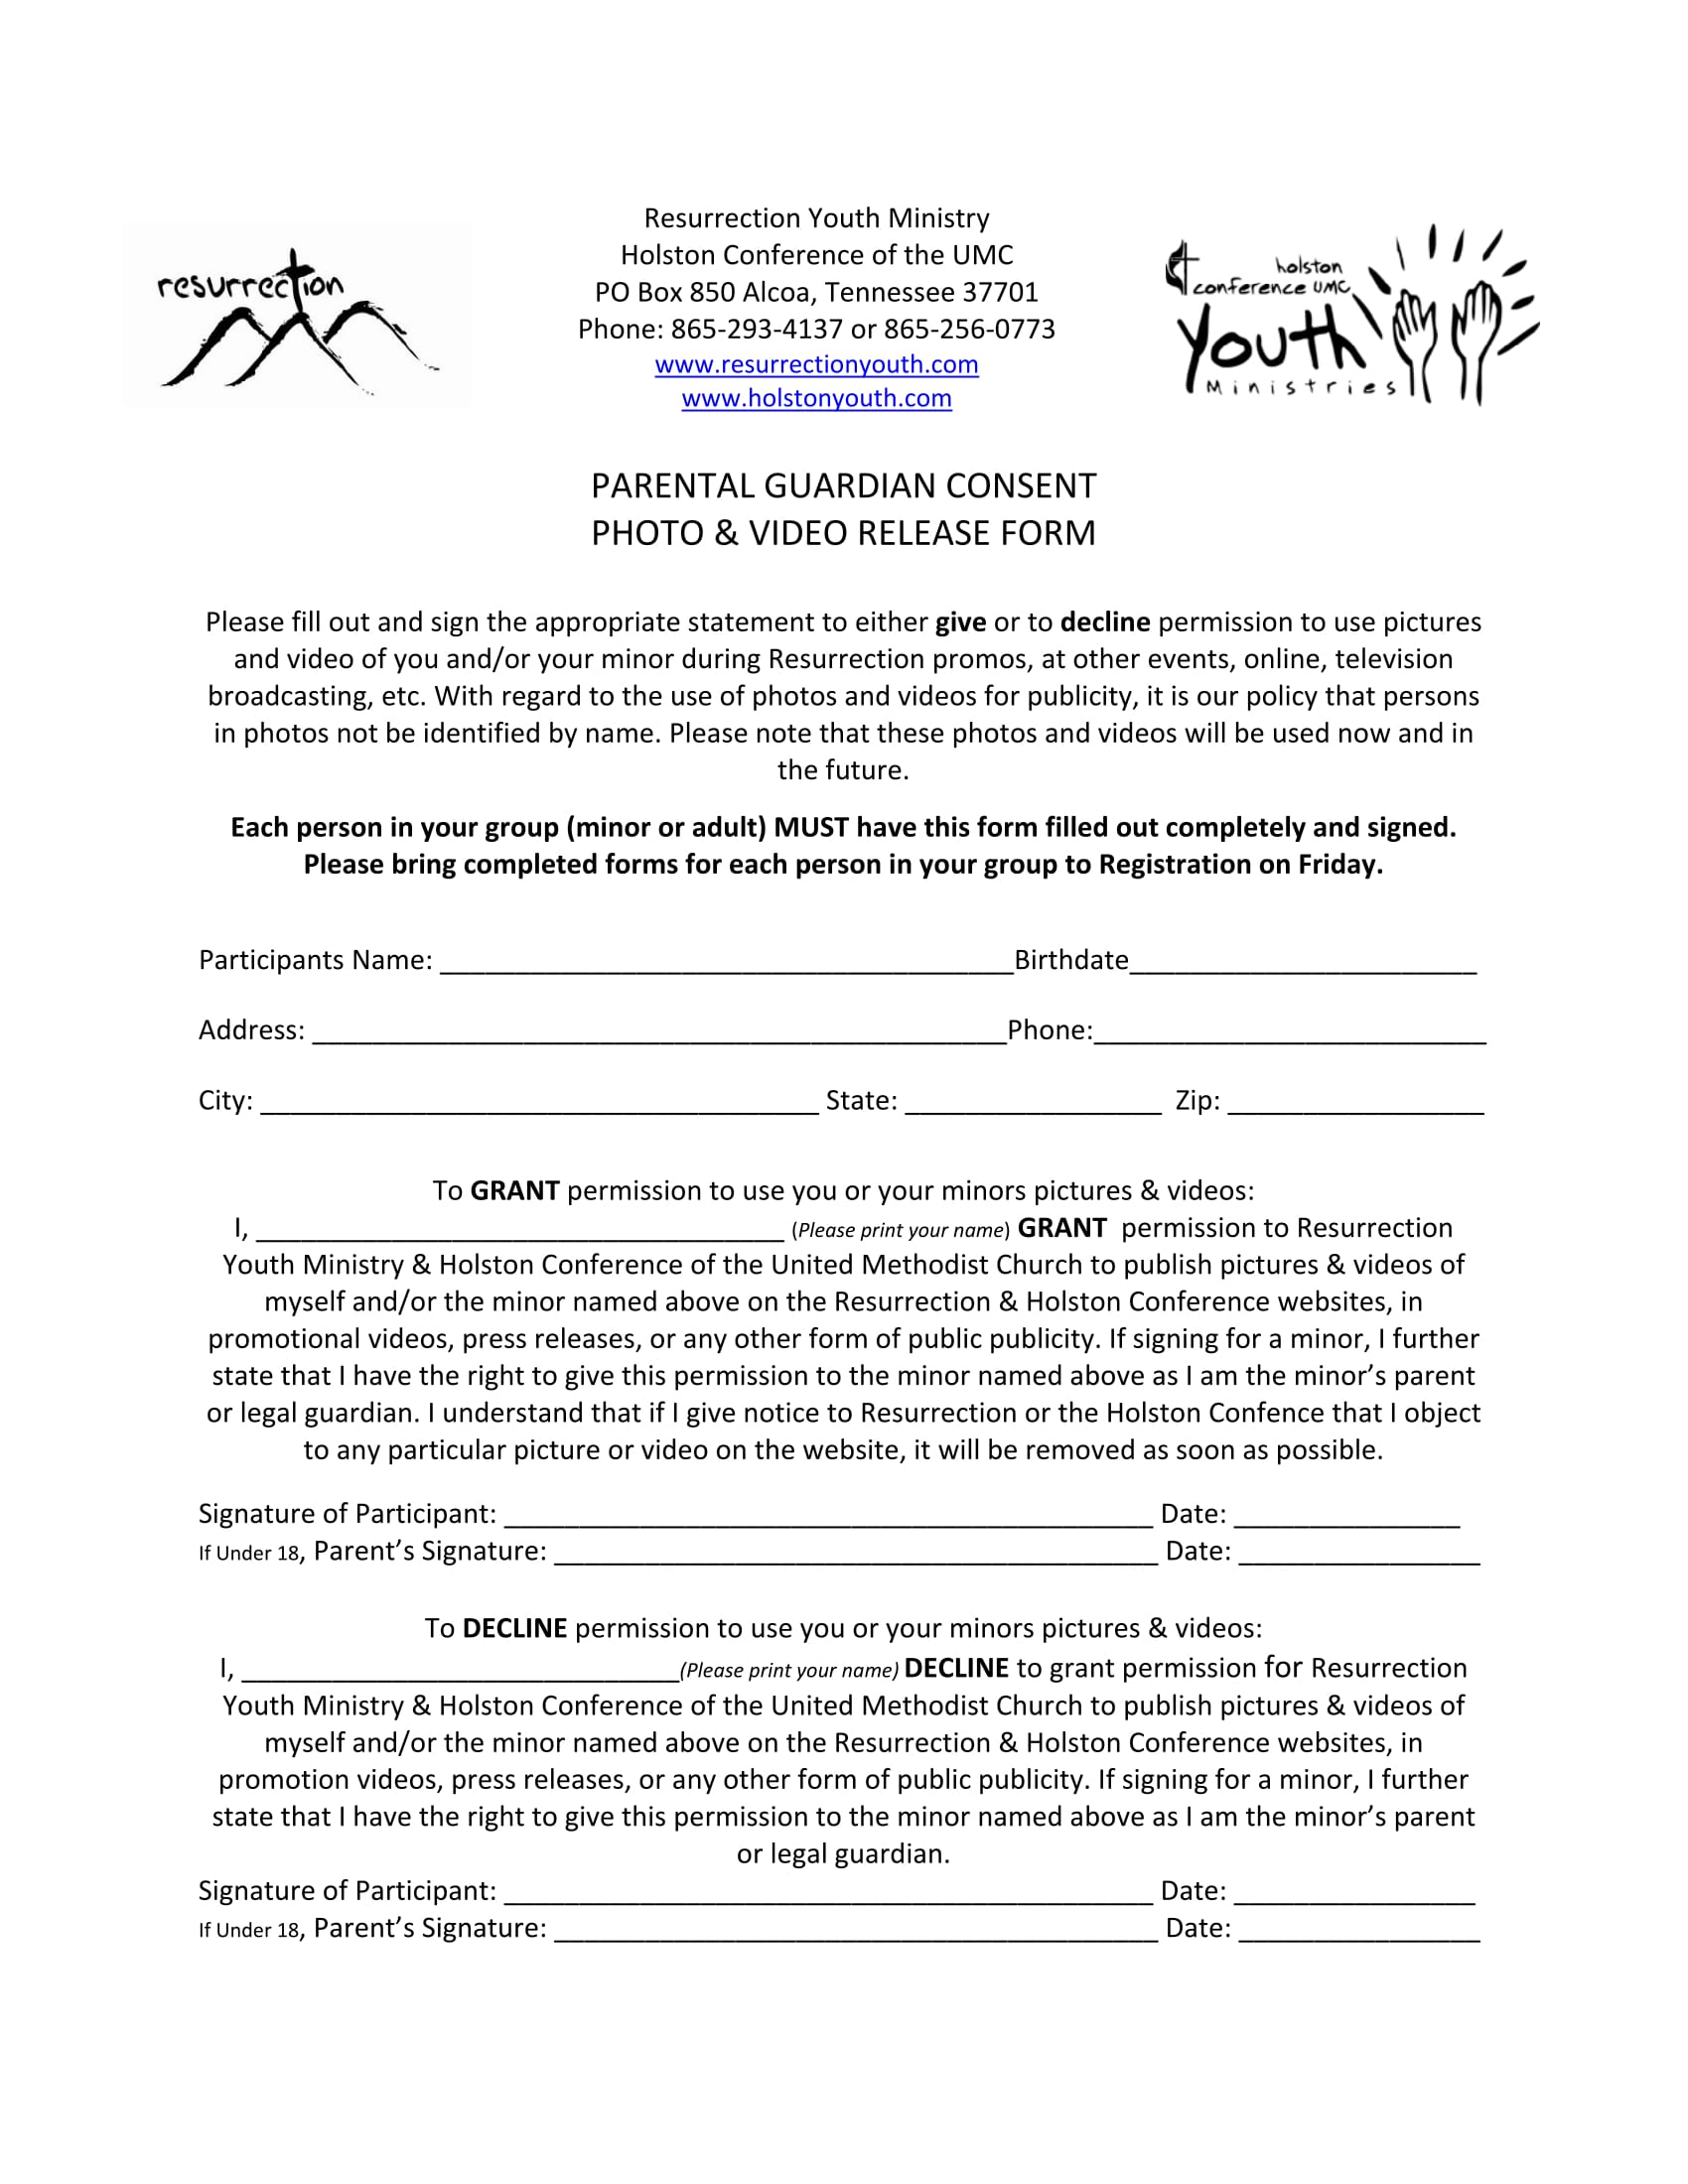 parent video consent form 1